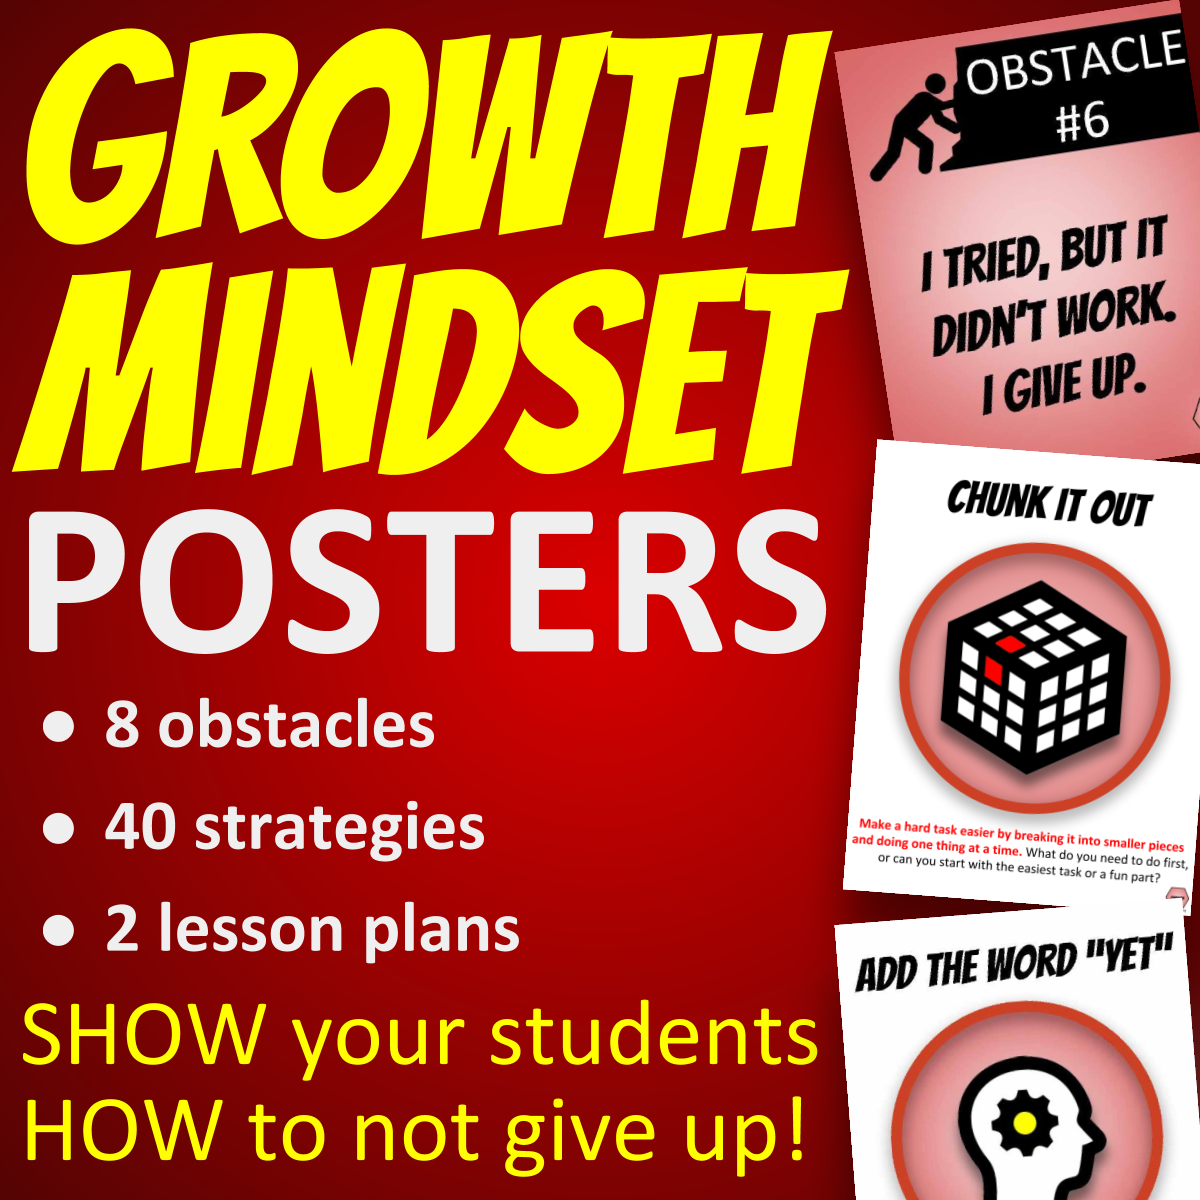 Growth Mindset Posters - 8 obstacles, 40 strategies, 2 lesson plans - SHOW your students HOW to not give up!